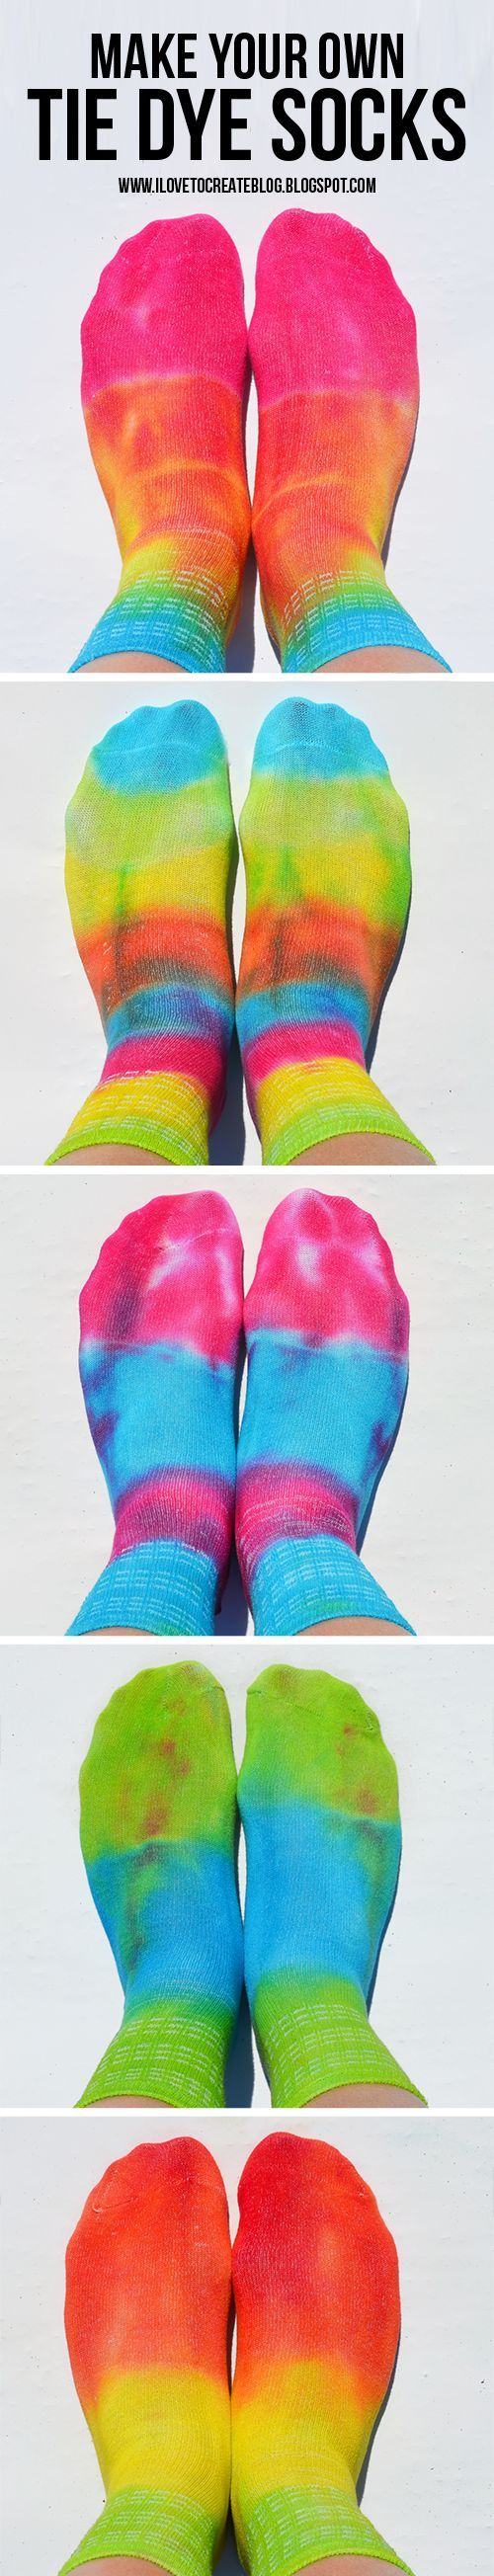 14 DIY Tie Dye Projects - Craft TeenCraft Teen